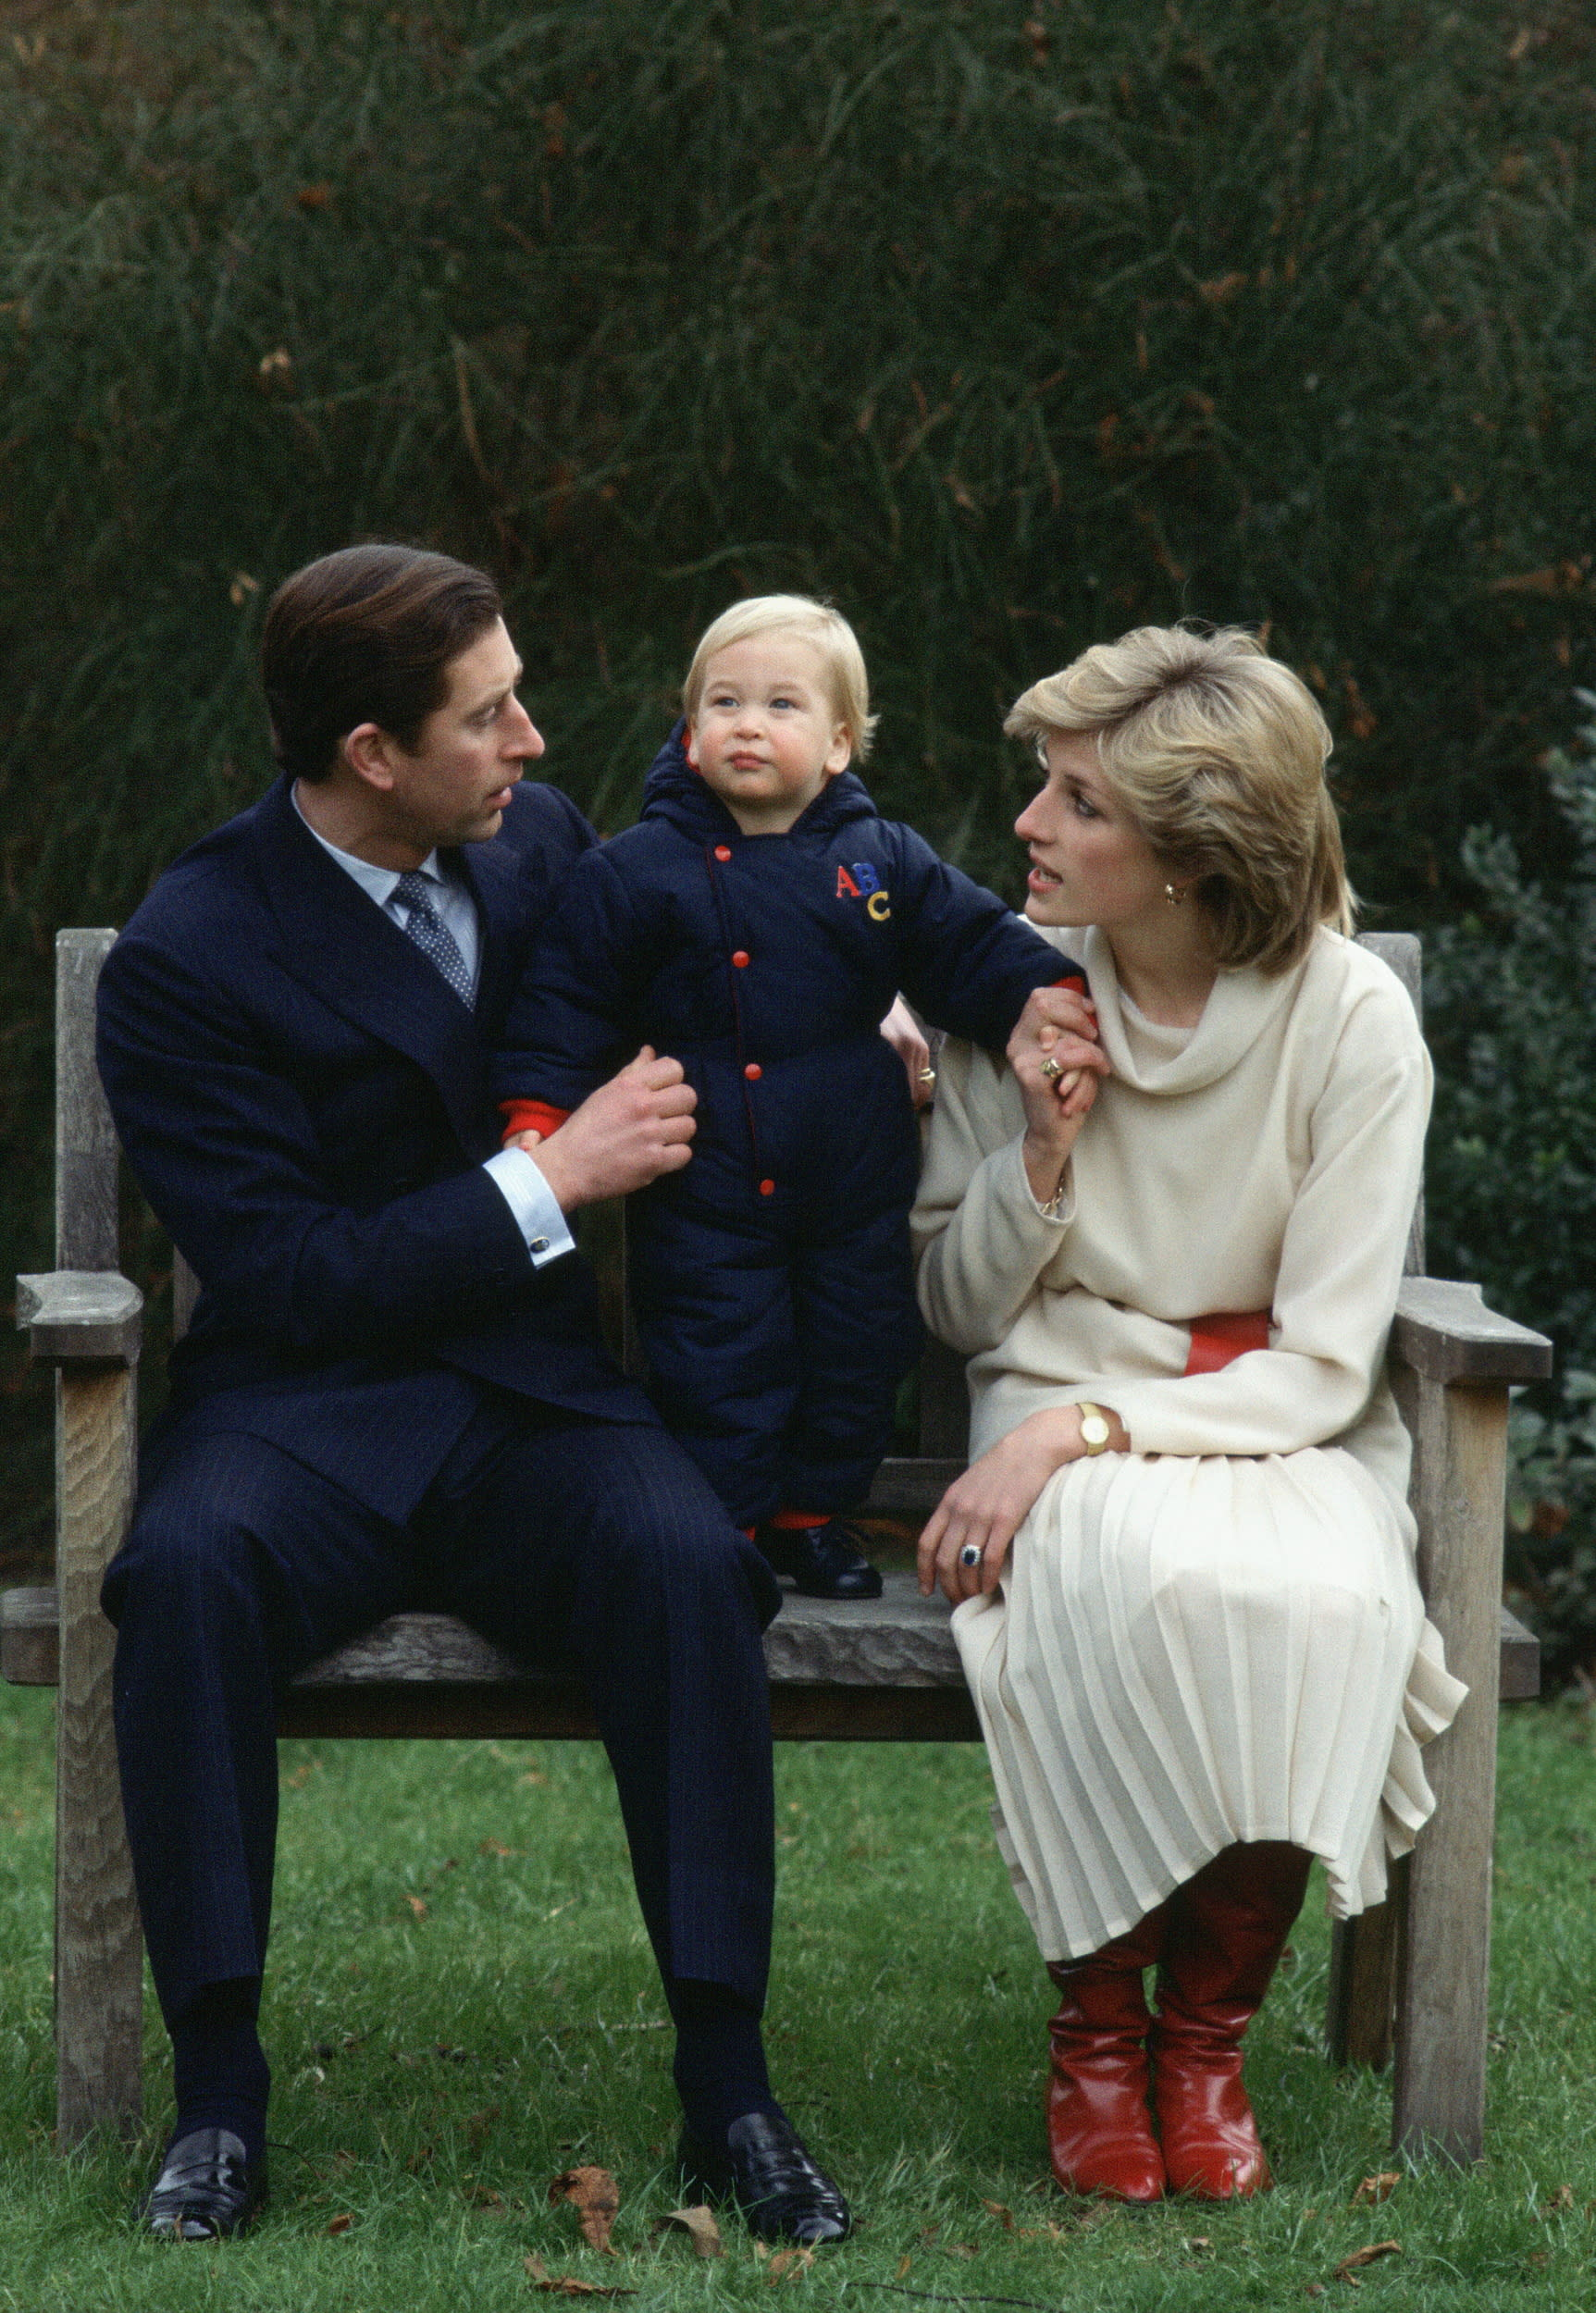 LONDON, UNITED KINGDOM - DECEMBER 14:  Prince Charles And Princess Diana Sitting On A Bench For A Photocall With Their Son, Prince William (age Approx 18 Months) , In Their Garden At Kensington Palace.  (Photo by Tim Graham/Getty Images)